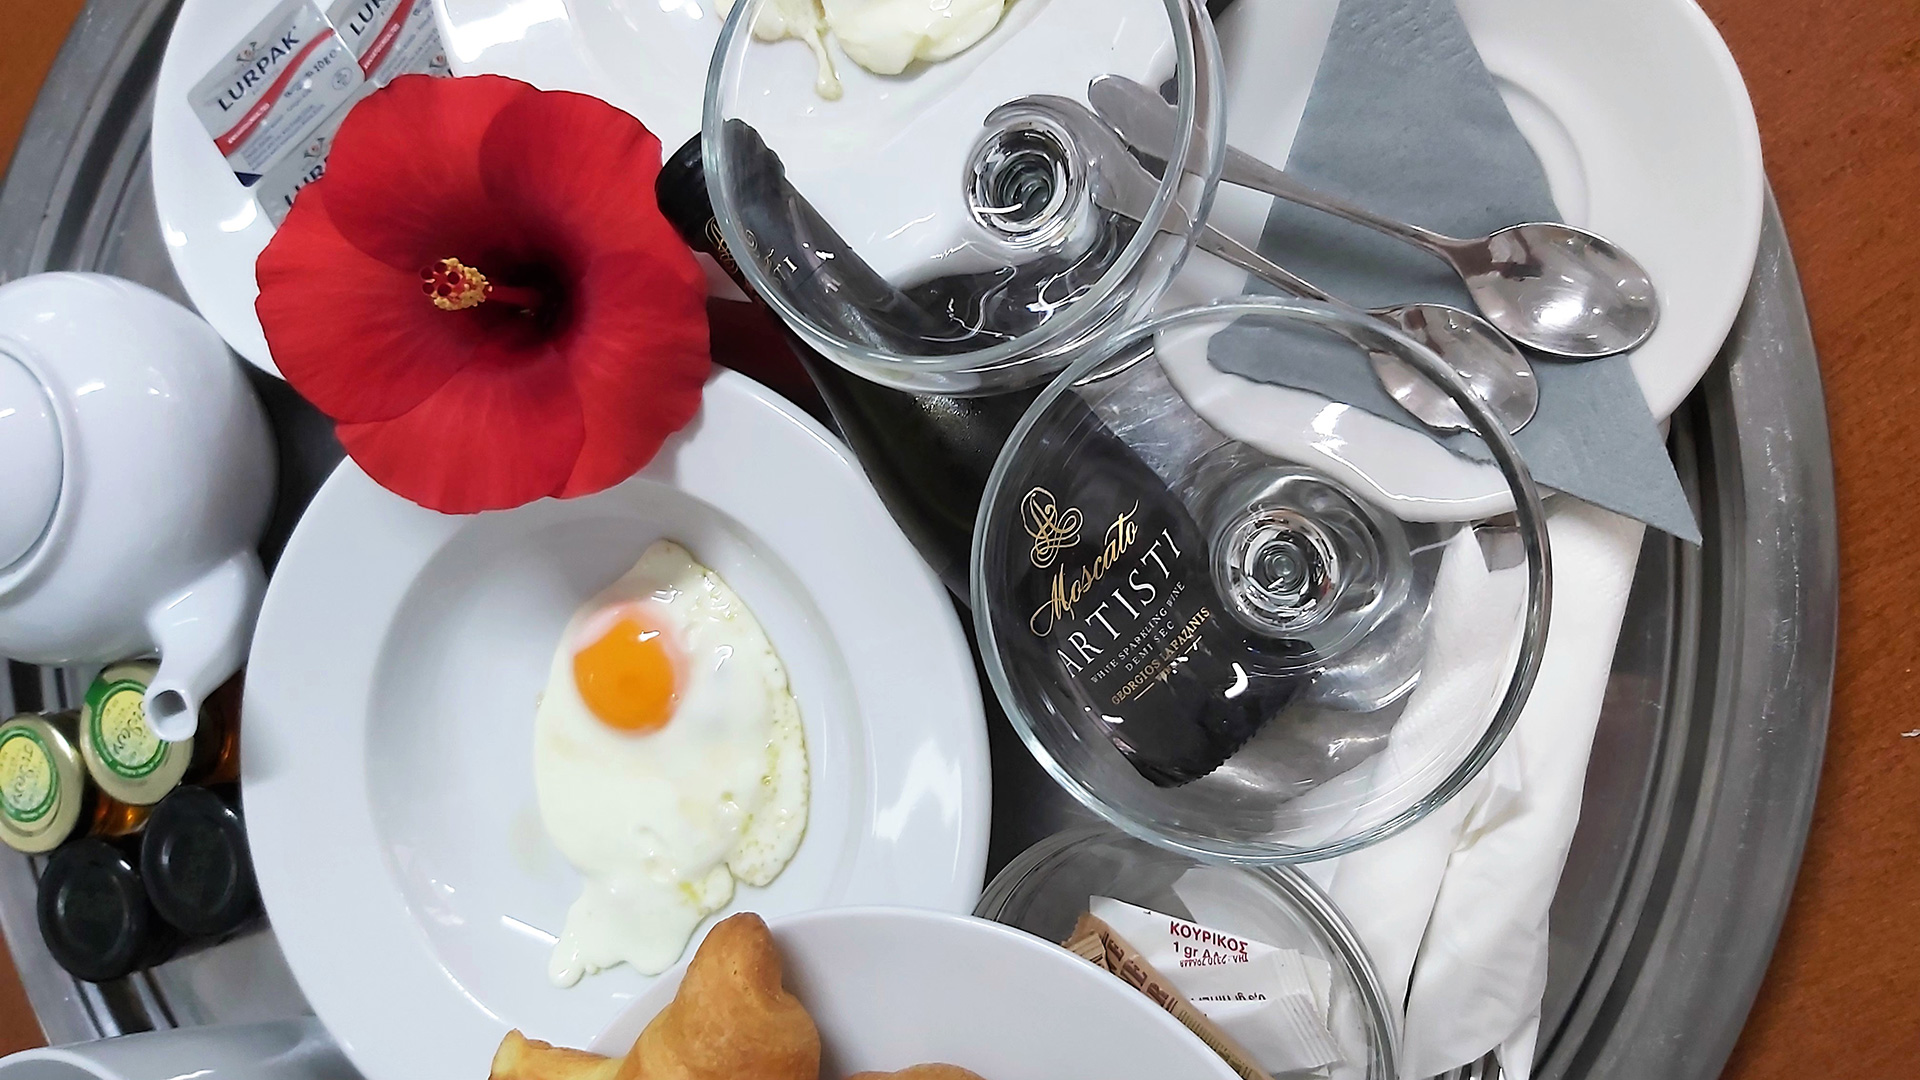 Delicious complimentary breakfast service in Akrogiali hotel in Polychrono Halkidiki